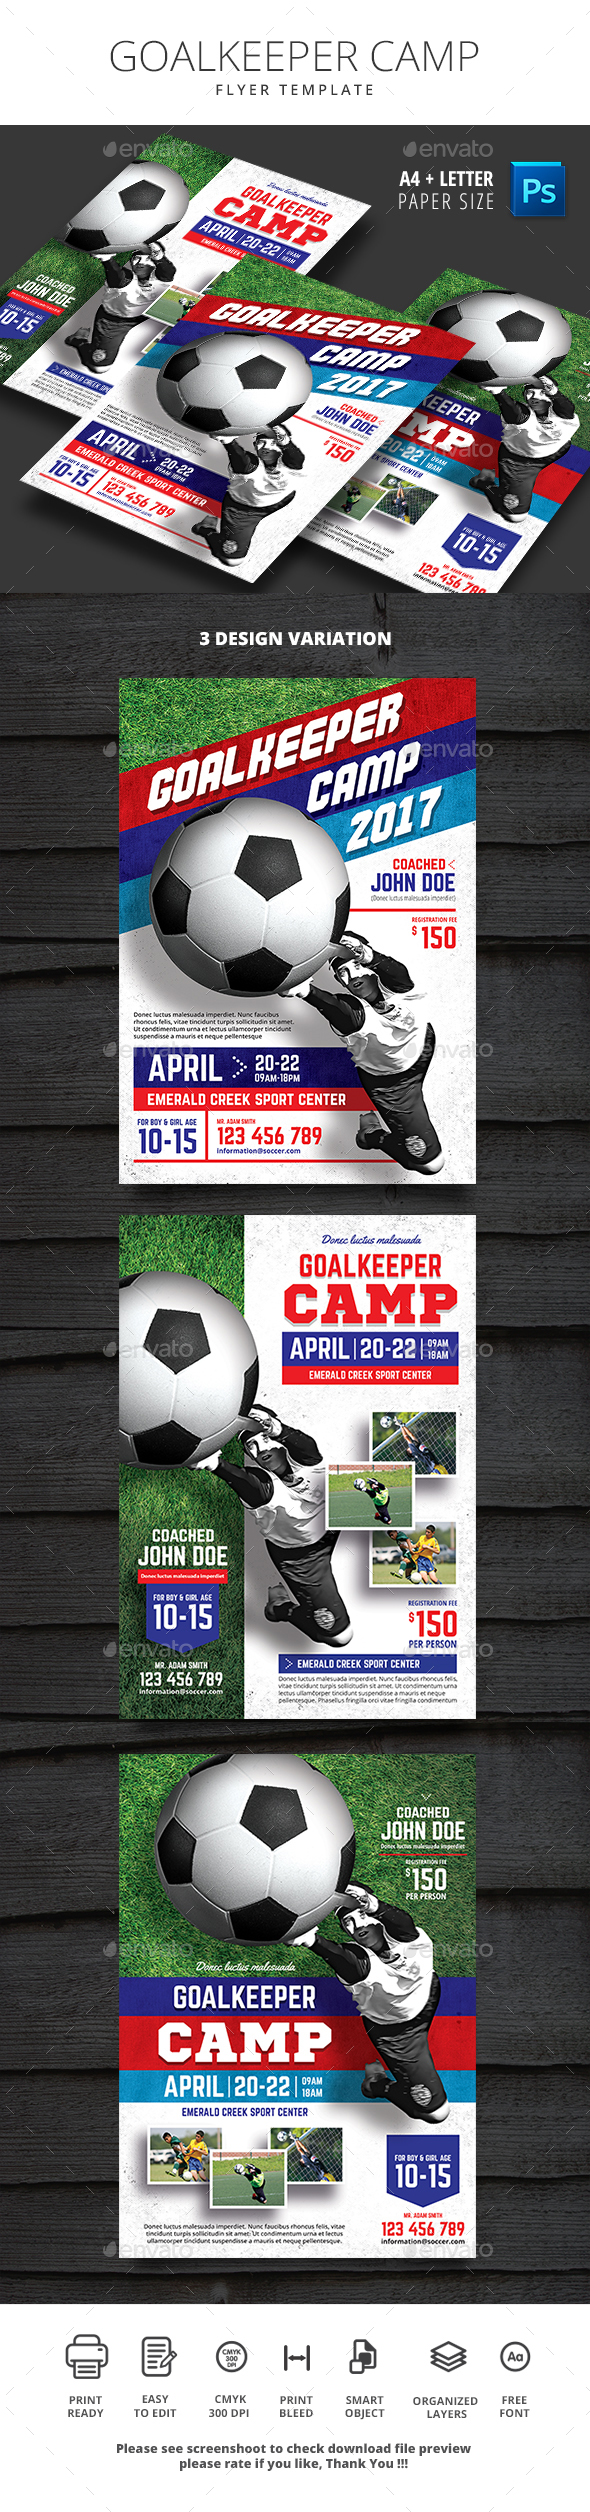 Goalkeeper Camp Flyer - Sports Events